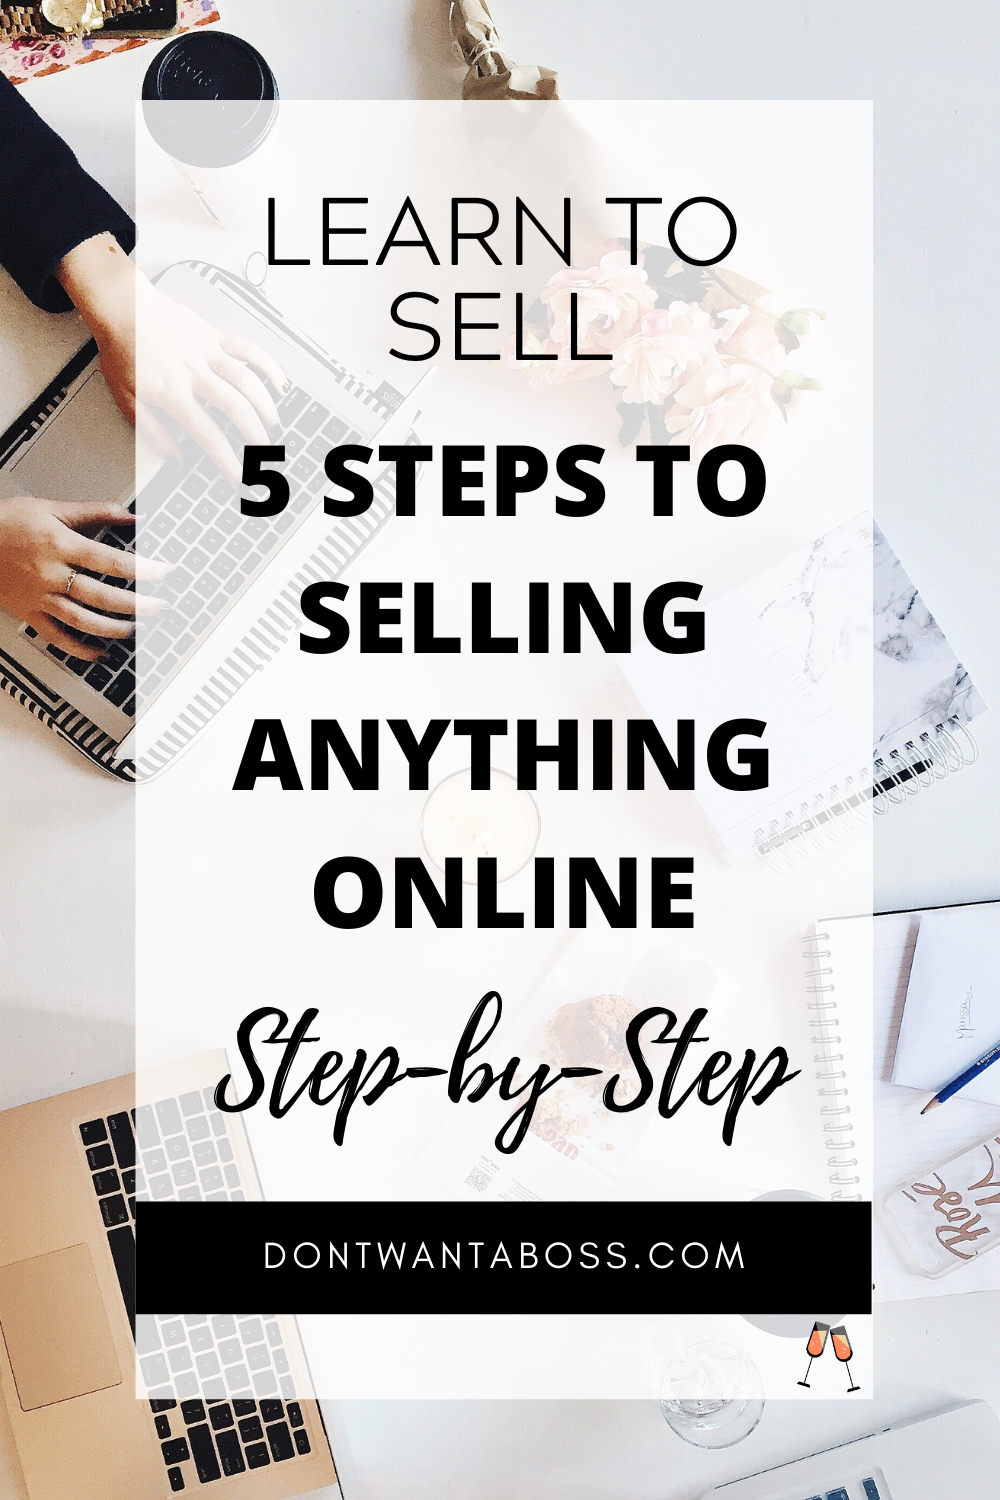 How to Sell Stuff Online - 5 Steps to Selling Absolutely Anything